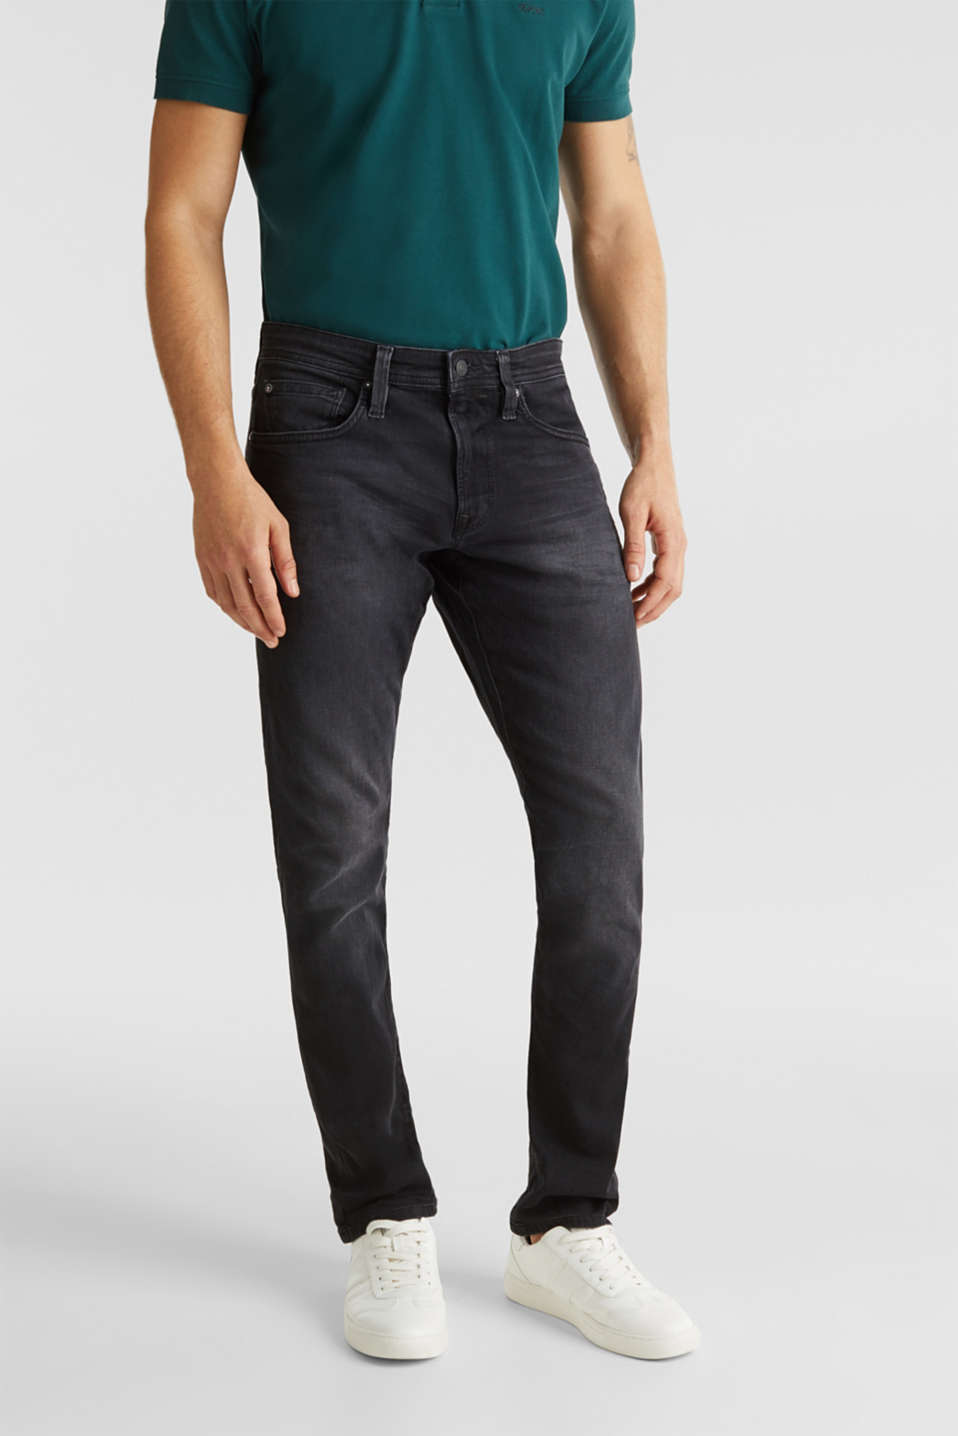 edc - Jean stretch noir